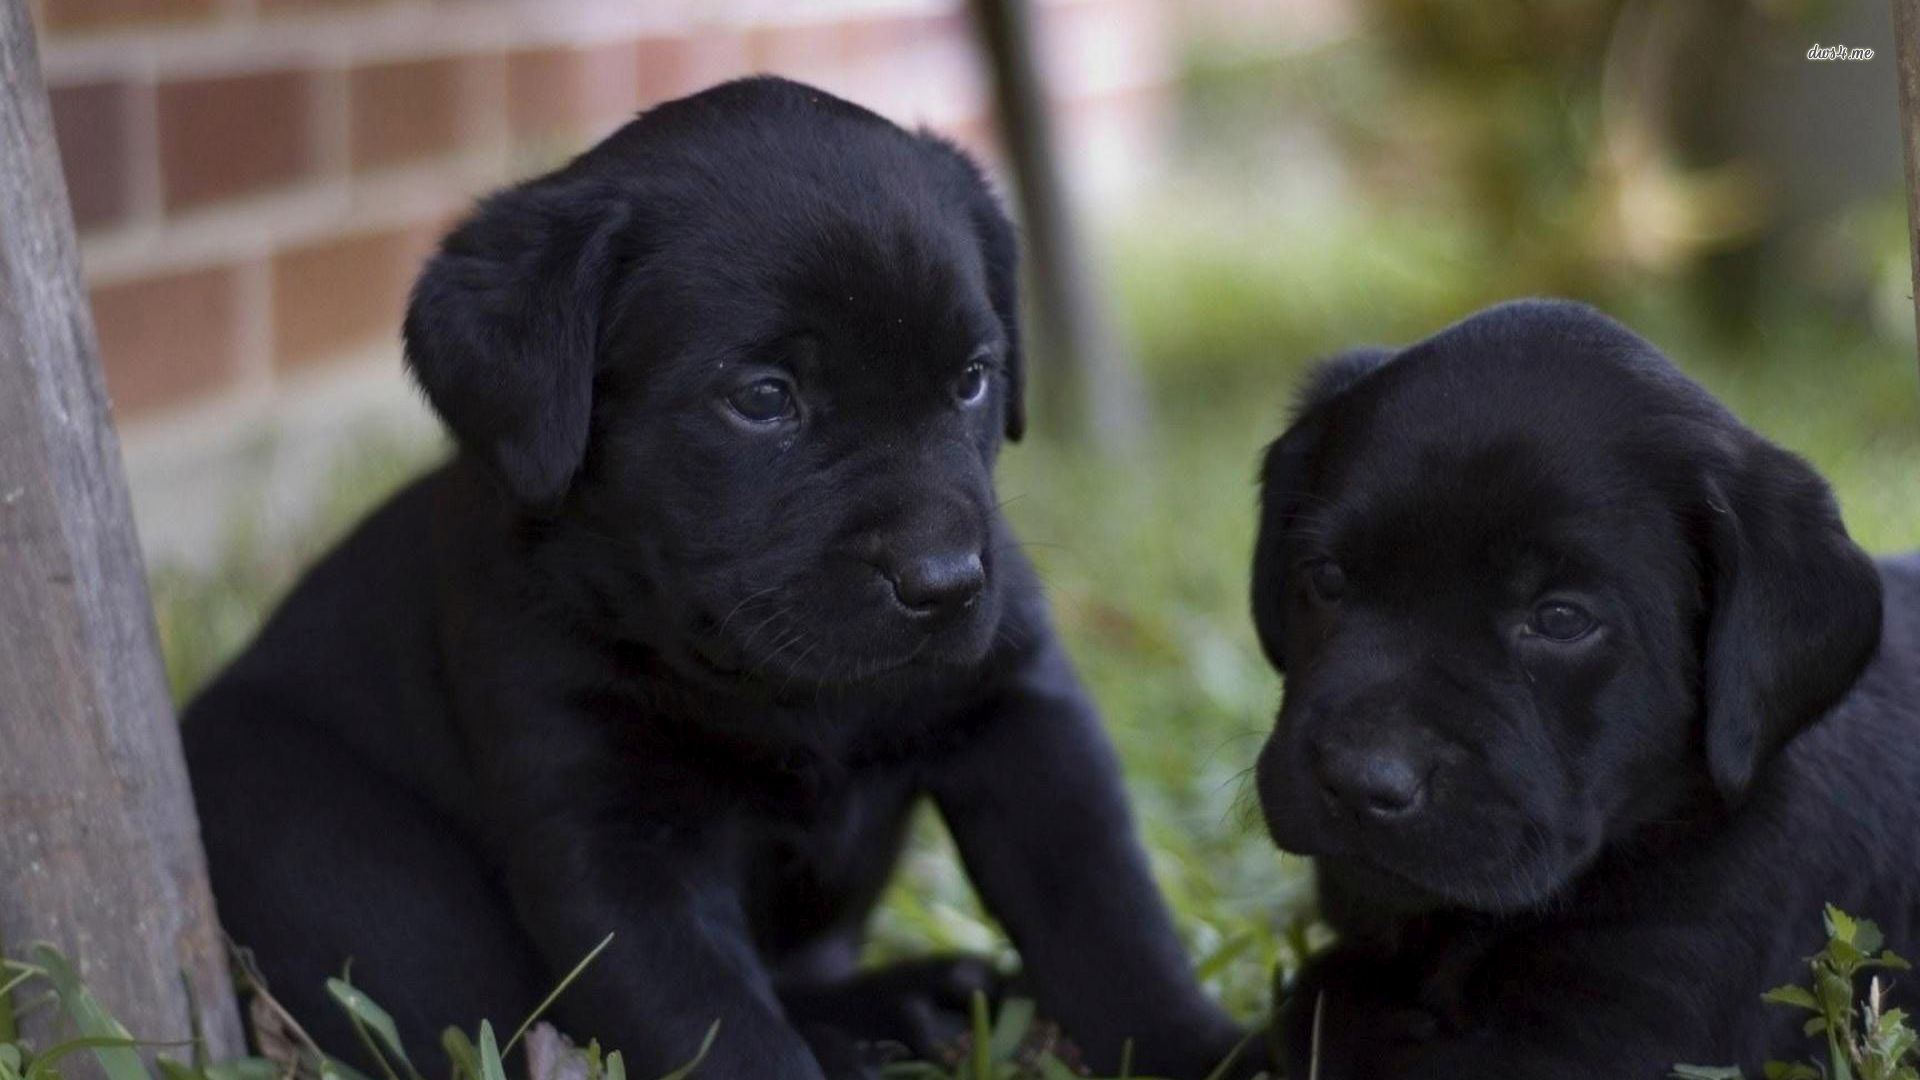 Black Labrador Puppies wallpaper   Animal wallpapers   27901 1920x1080